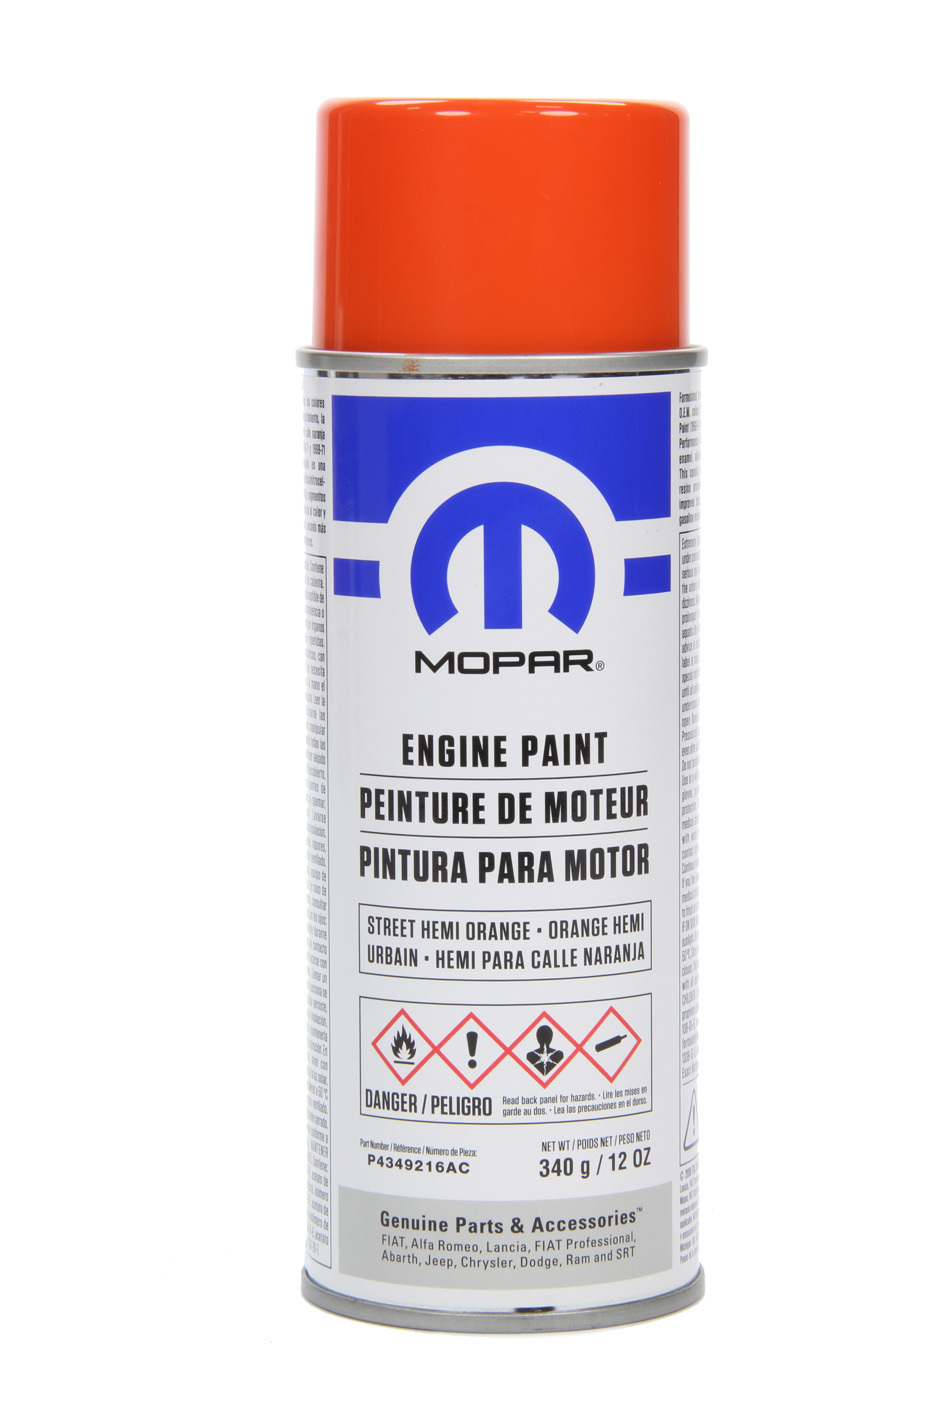 Shop for MOPAR PERFORMANCE Paints, Coatings and Markers